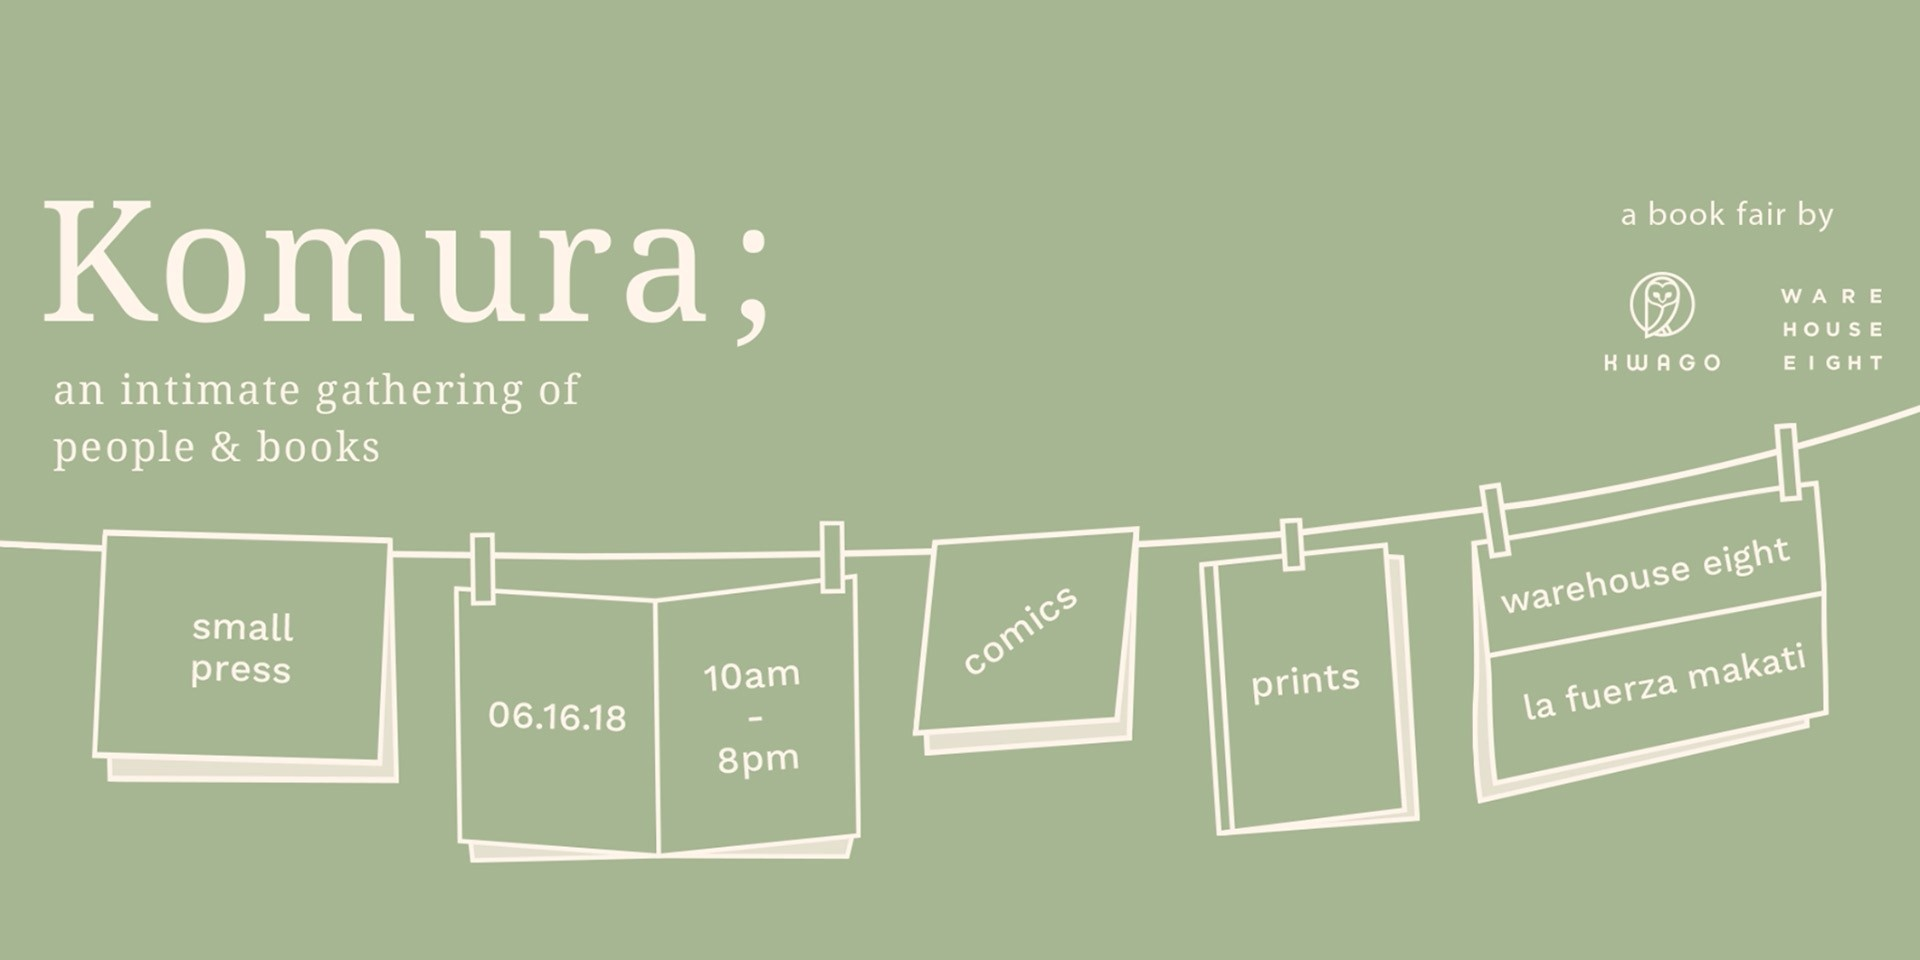 Explore a new form of storytelling at the Komura; book fair this weekend